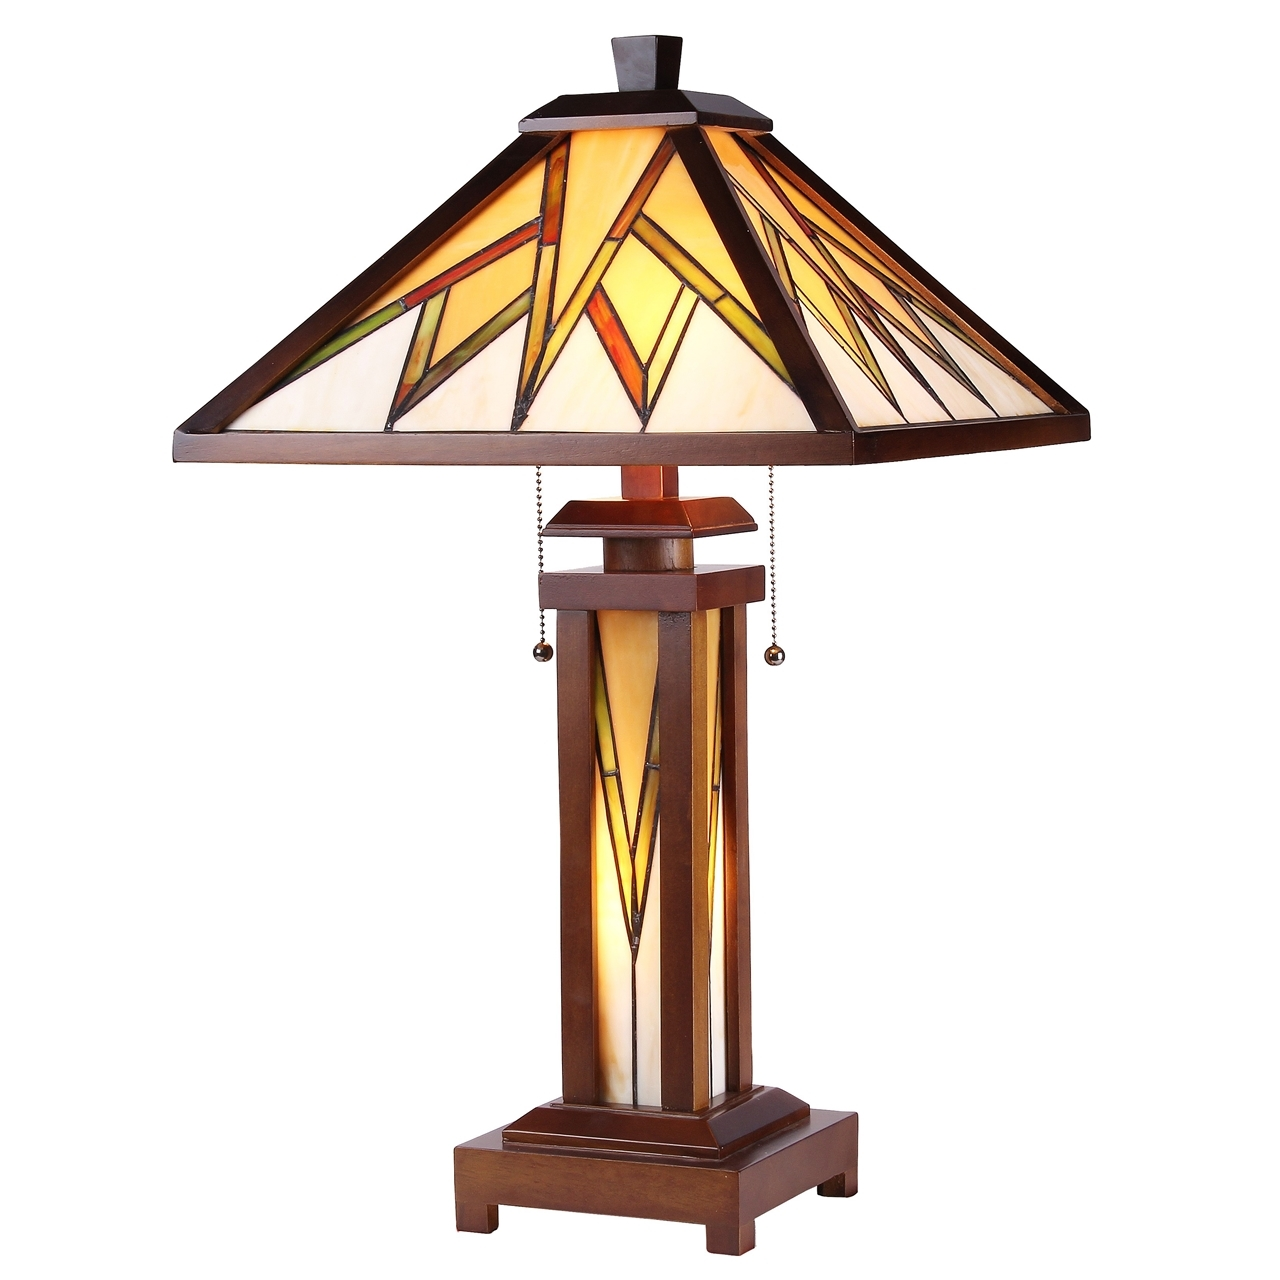 Chloe lighting inc tiffany lamp tiffany lamps tiffany style lamp chloe lighting lamorak tiffany style mission 3 light double lit wooden table lamp aloadofball Image collections